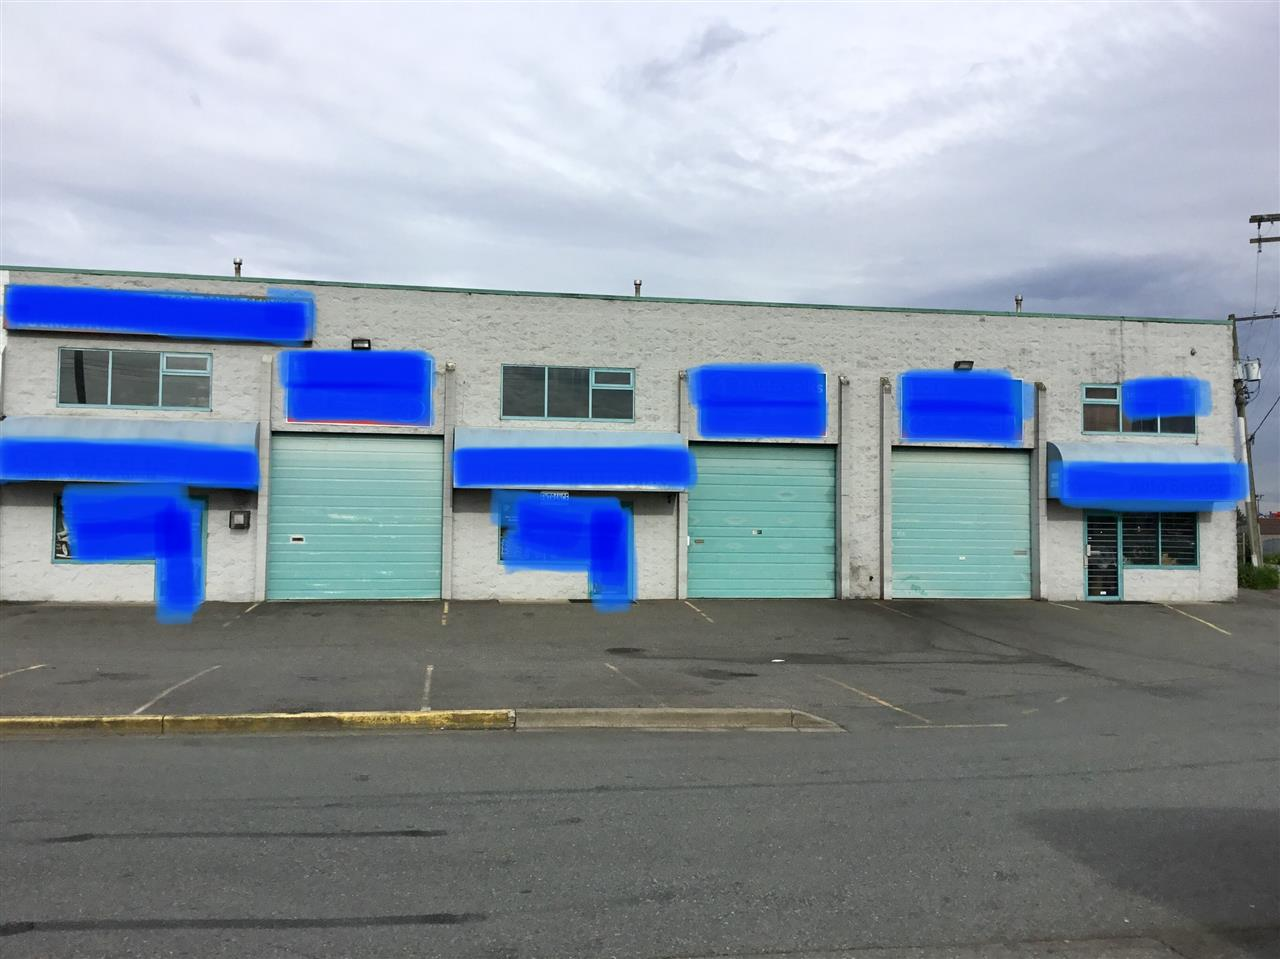 103 20058 INDUSTRIAL AVENUE, at $585,000